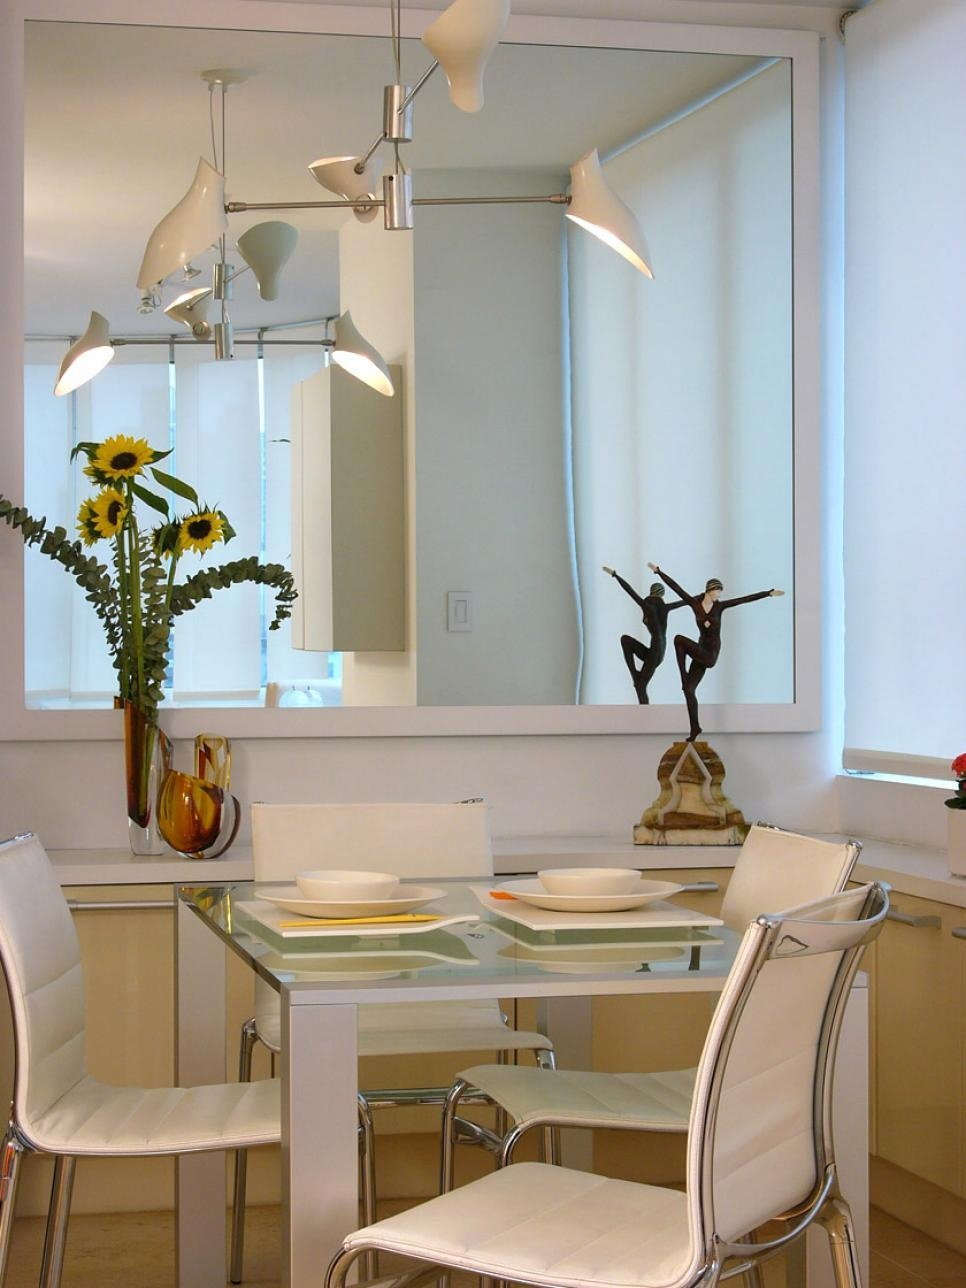 Decorating With Mirrors | Hgtv Within Mirrors For Living Room Walls (Image 3 of 20)